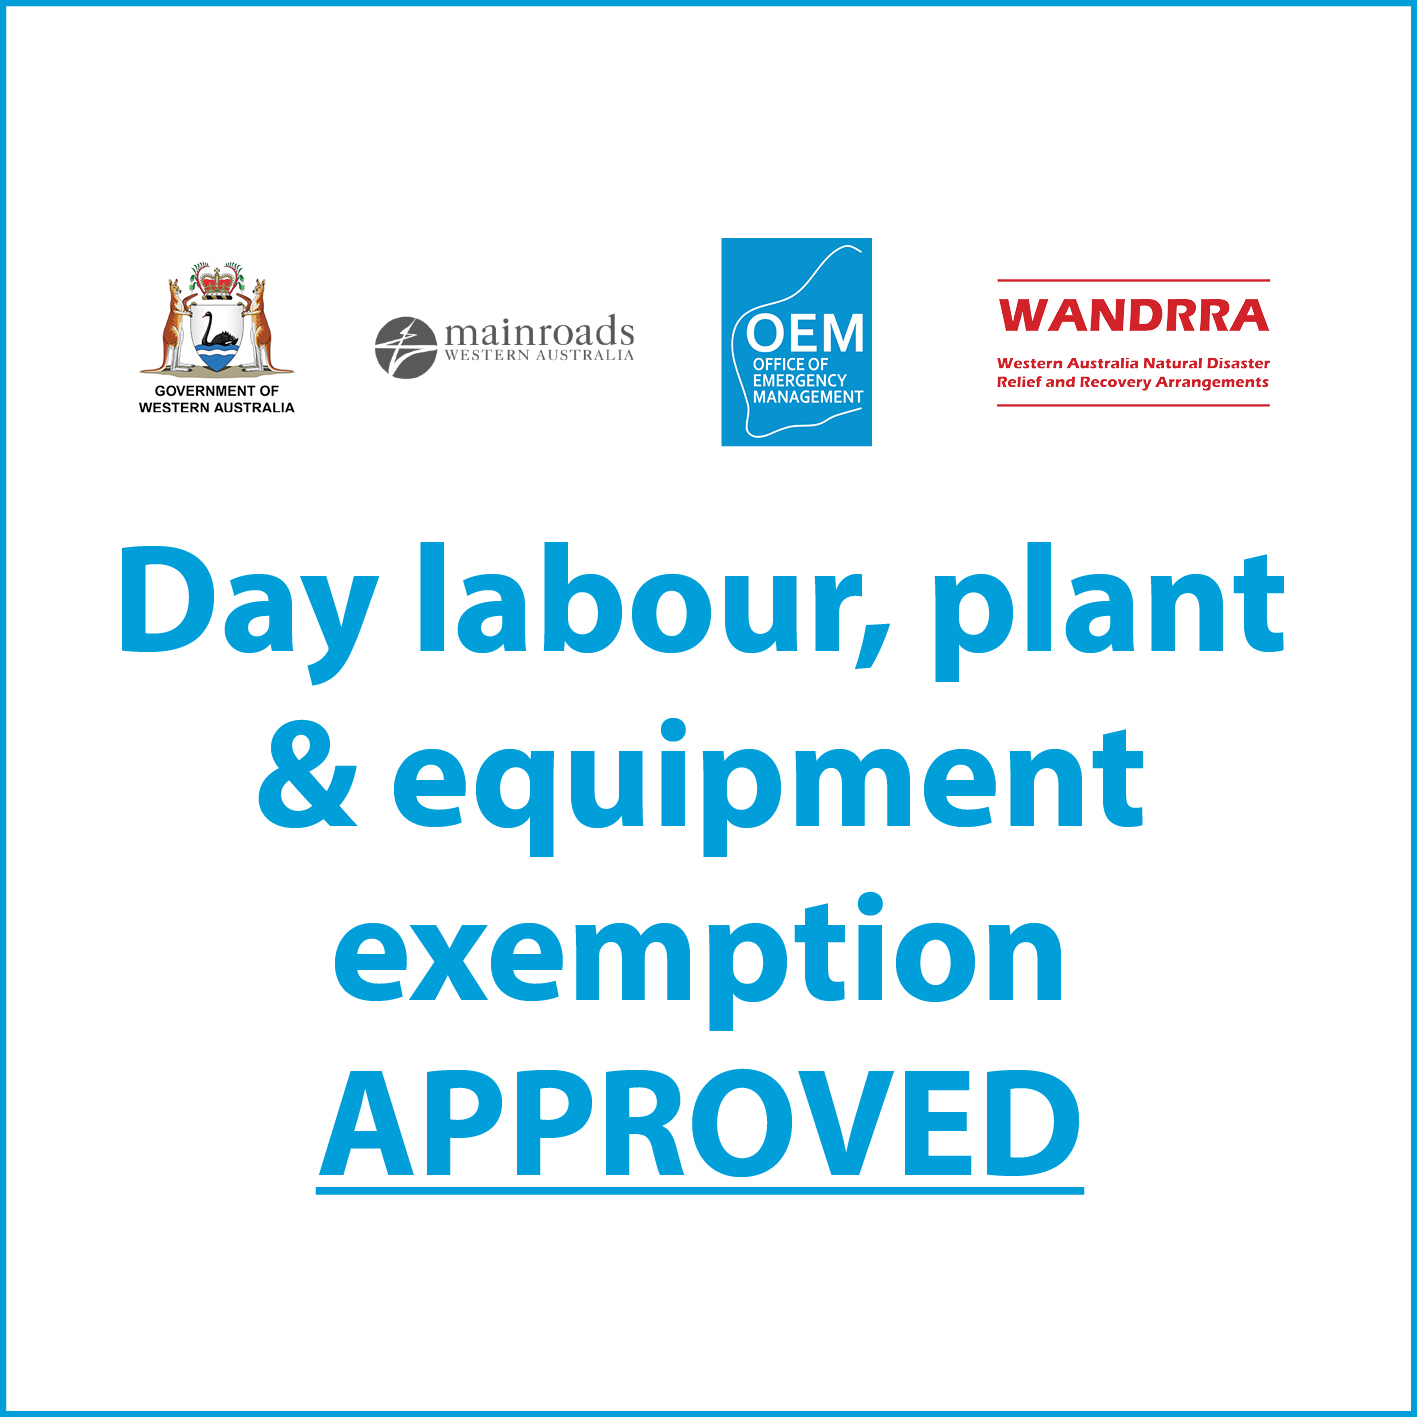 Labour Plant Equipment Exemption Approved